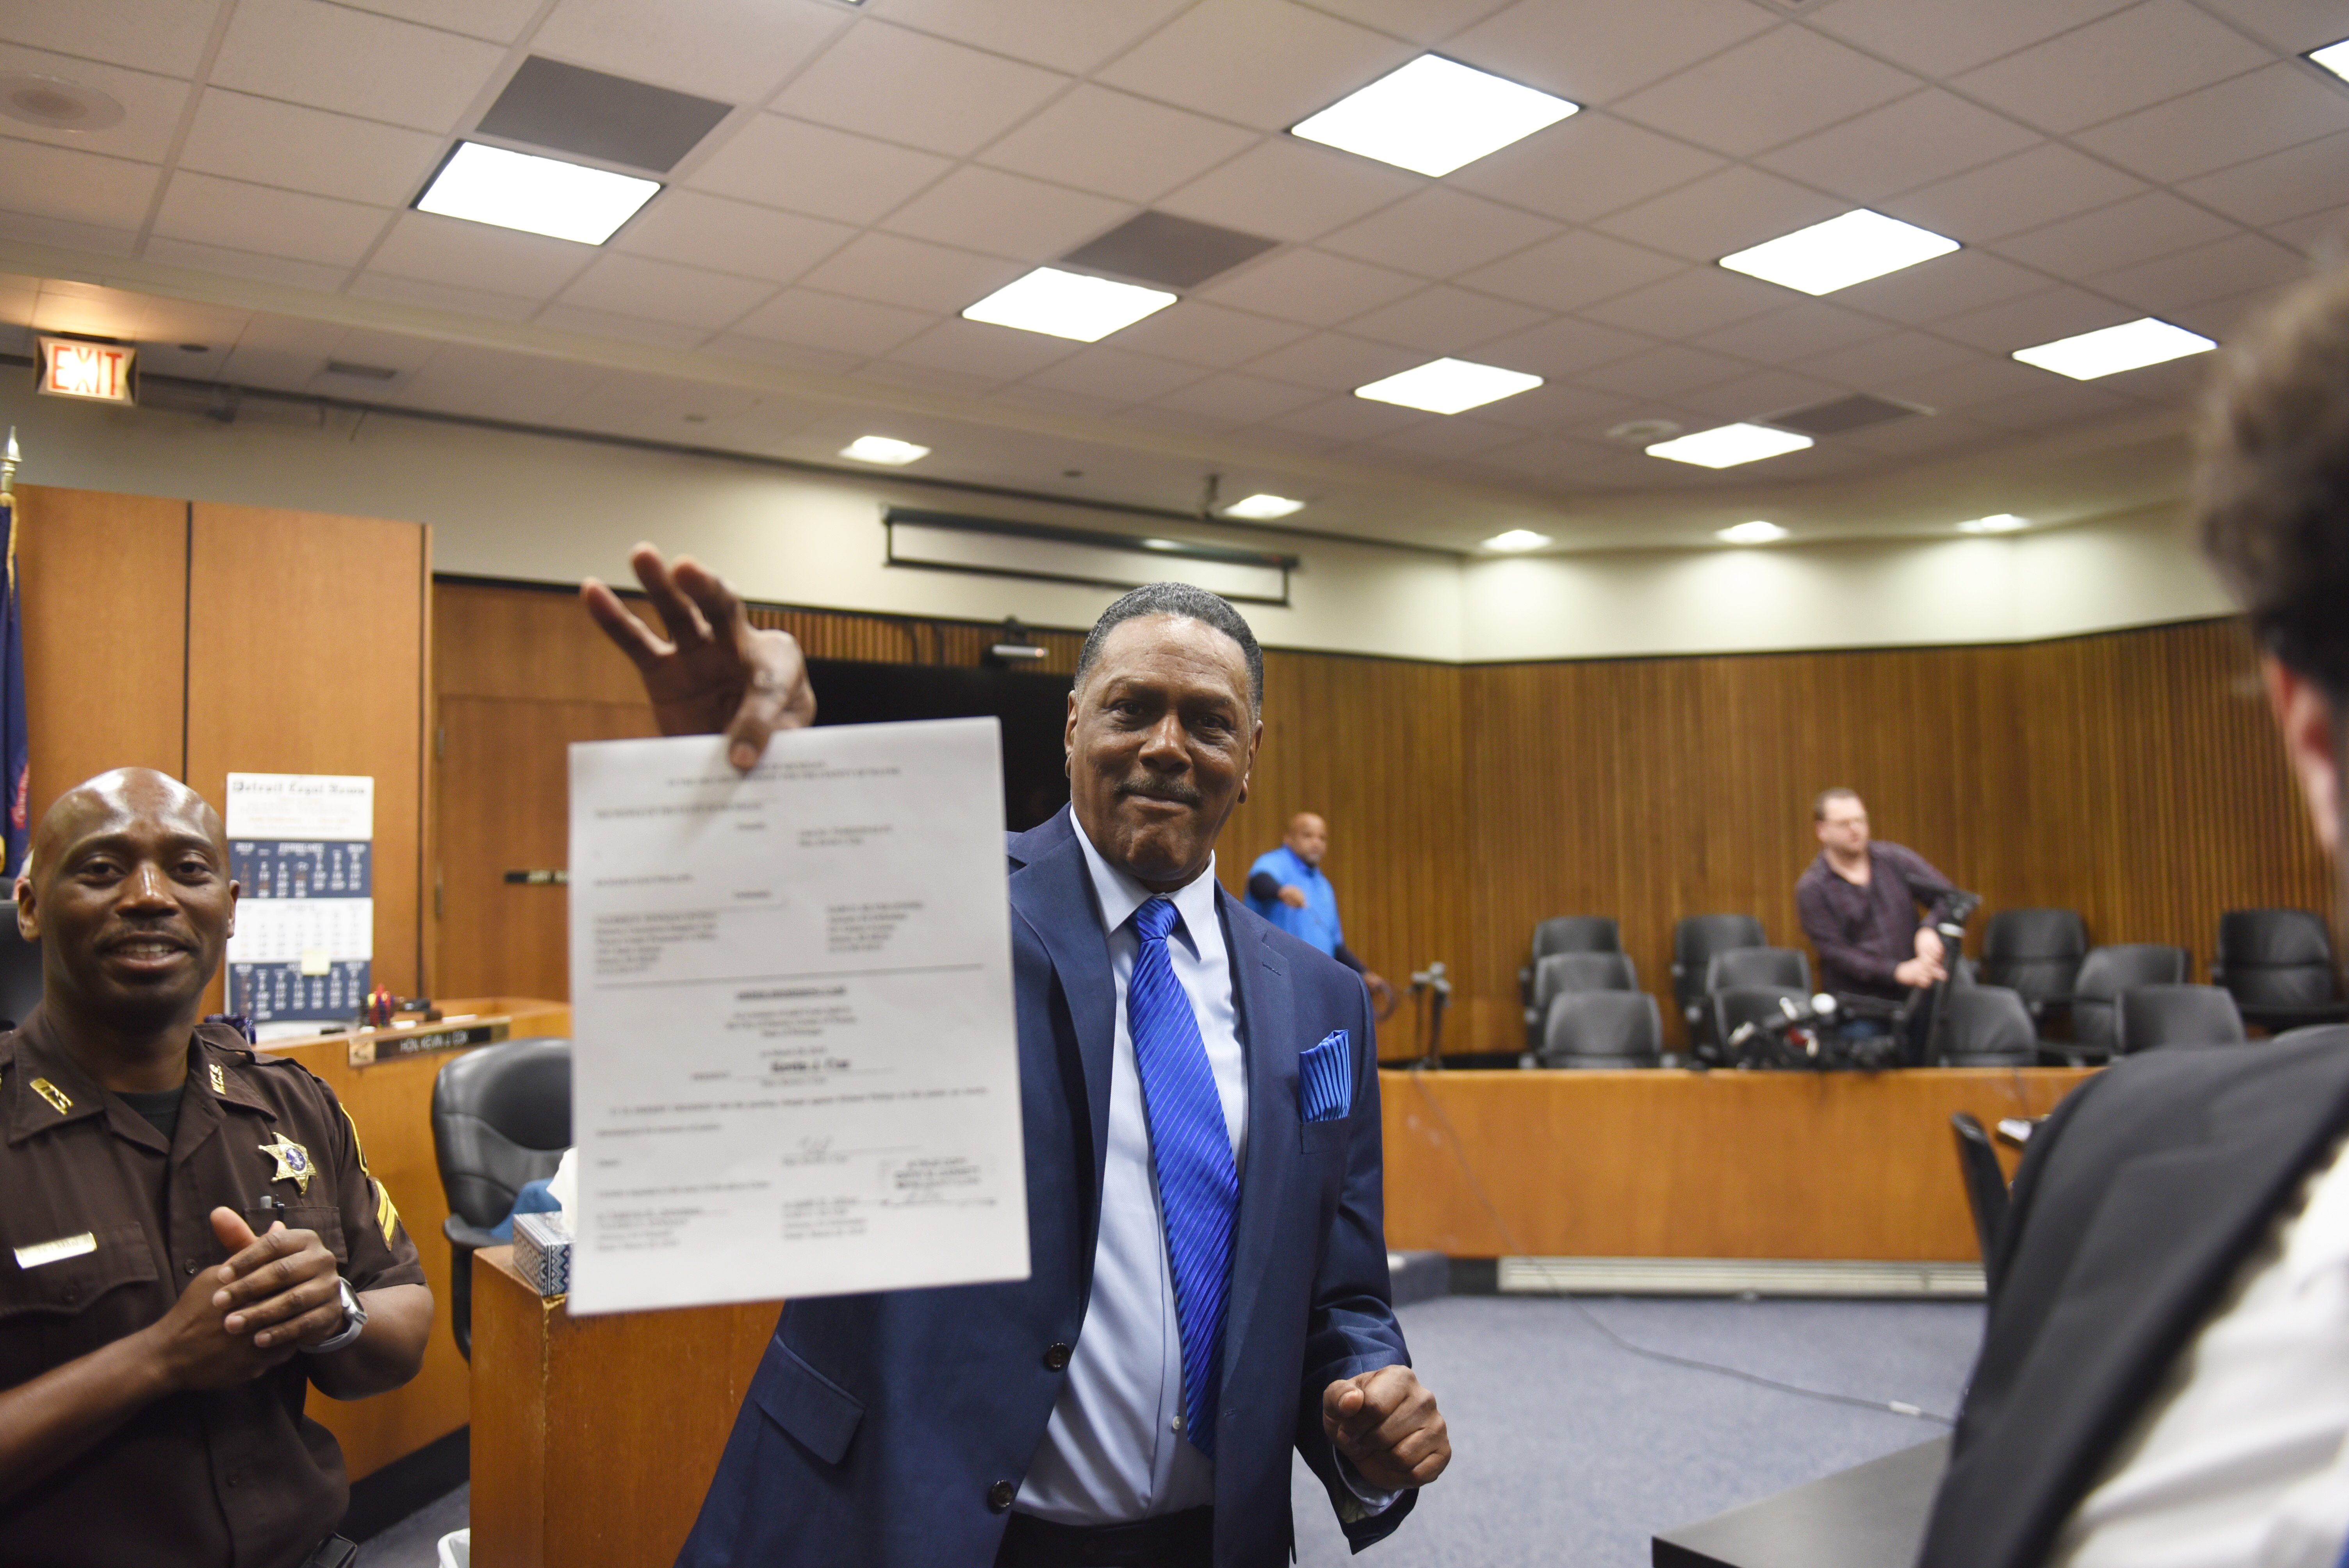 Richard Phillips shows his order of dismissal of homicide charges against him in Judge Kevin Cox's courtroom at the Frank Murphy Hall of Justice in Detroit on Wednesday, March 28, 2018.